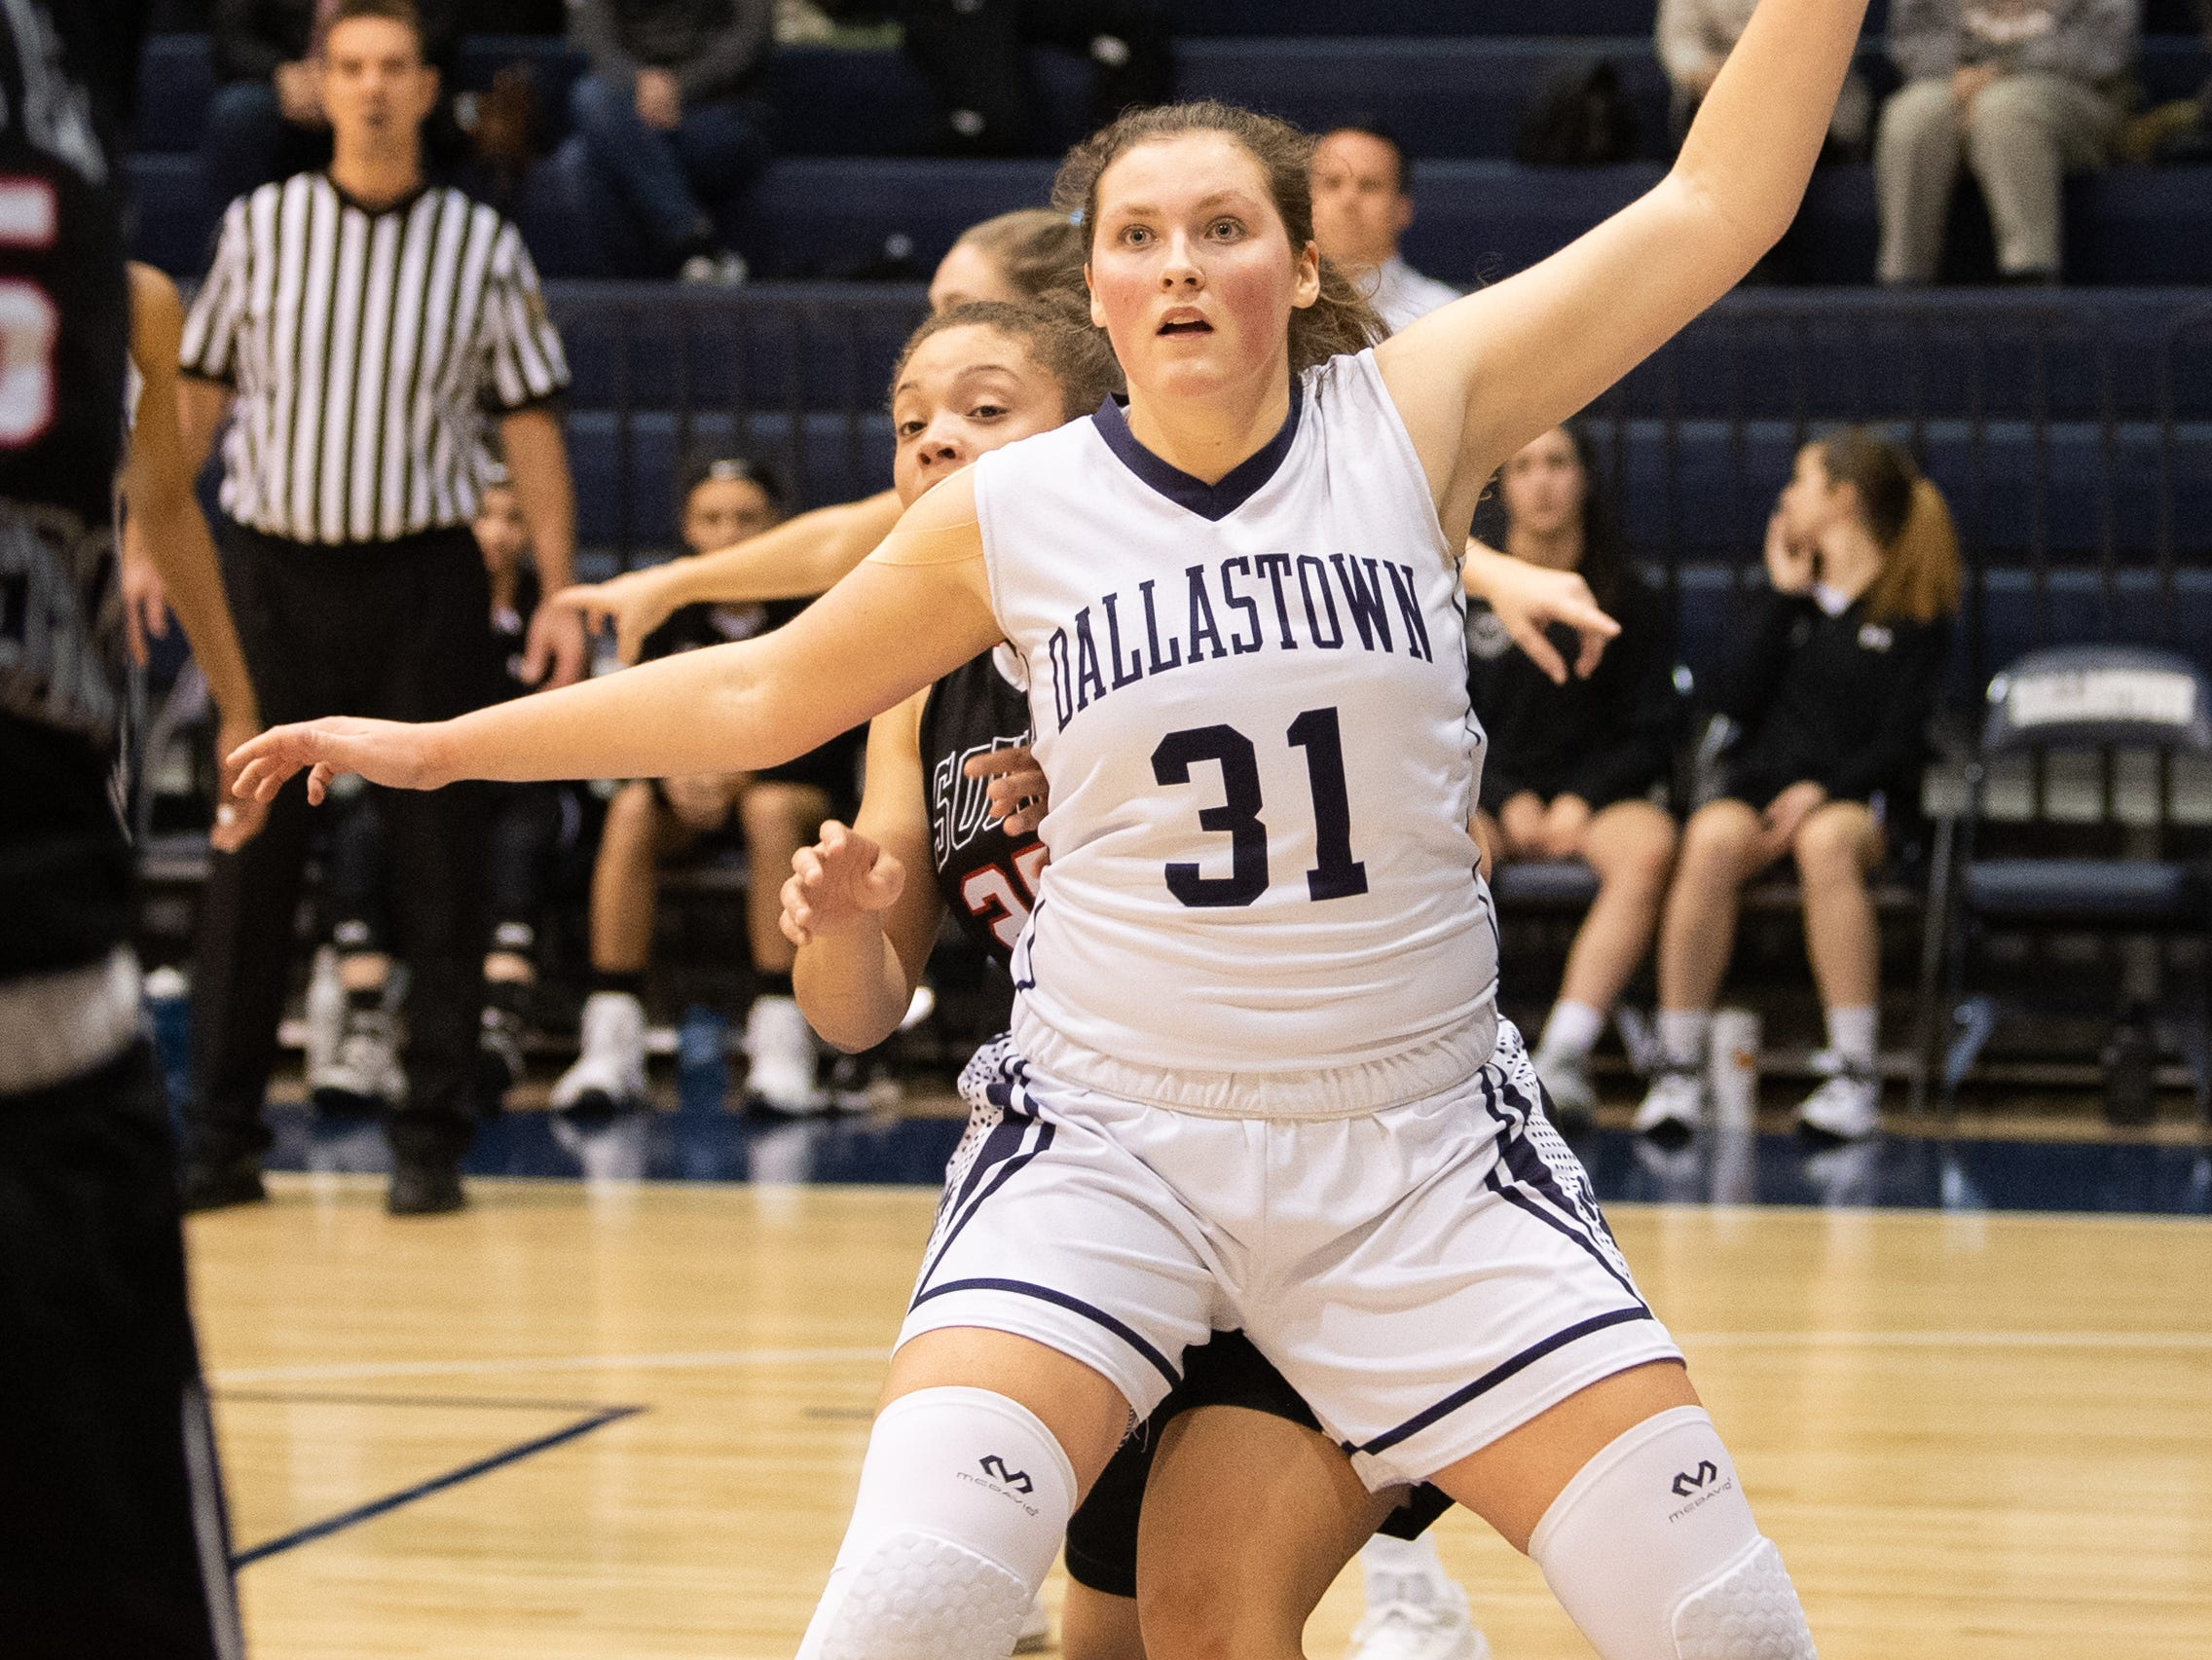 Dallastown's Samantha Miller (31) looks for the pass inside during the YAIAA girls' basketball game between Dallastown and South Western, Tuesday, January 22, 2019. The Wildcats defeated the Mustangs 38-35.